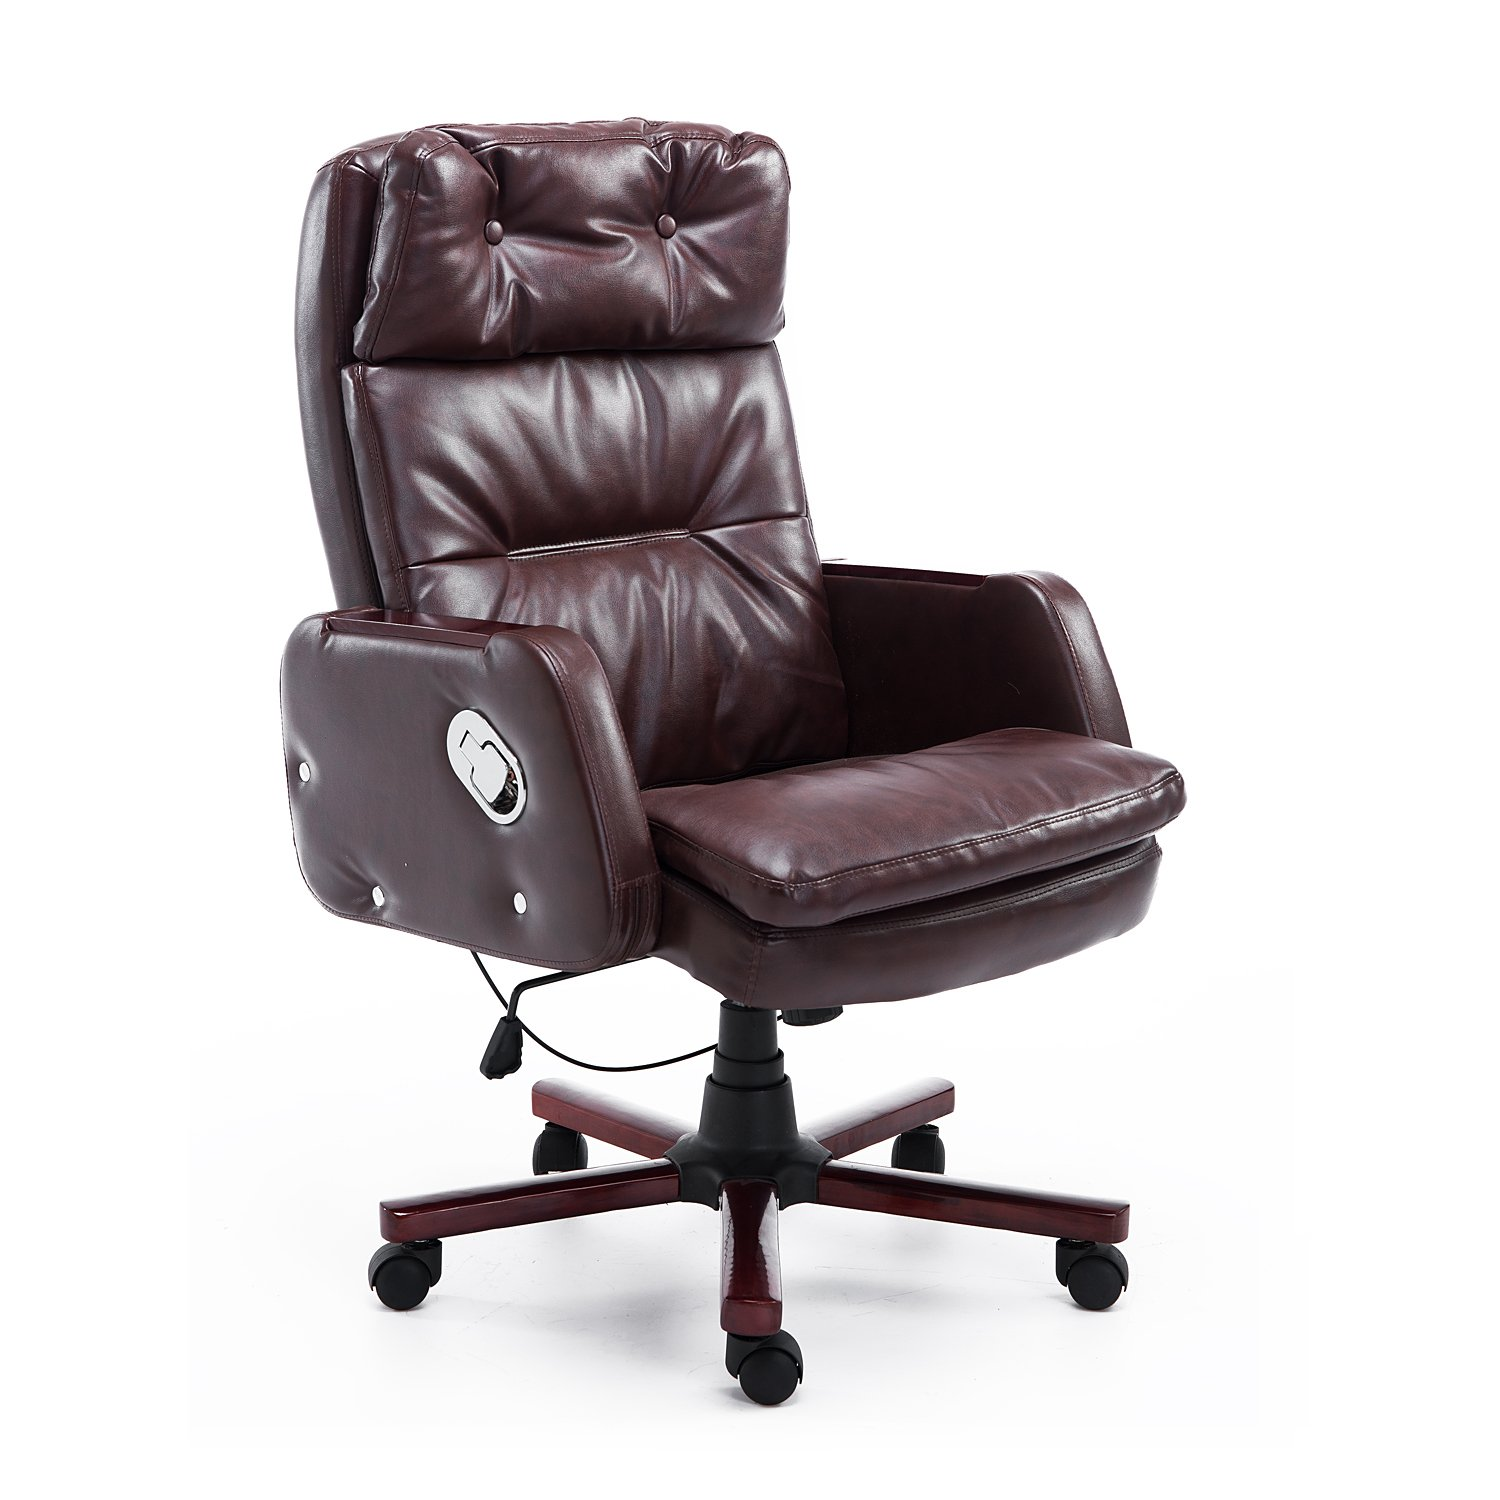 HOMCOM Faux Leather Reclining Office Chair Seat with Adjustable Backrest (Black) Aosom Canada